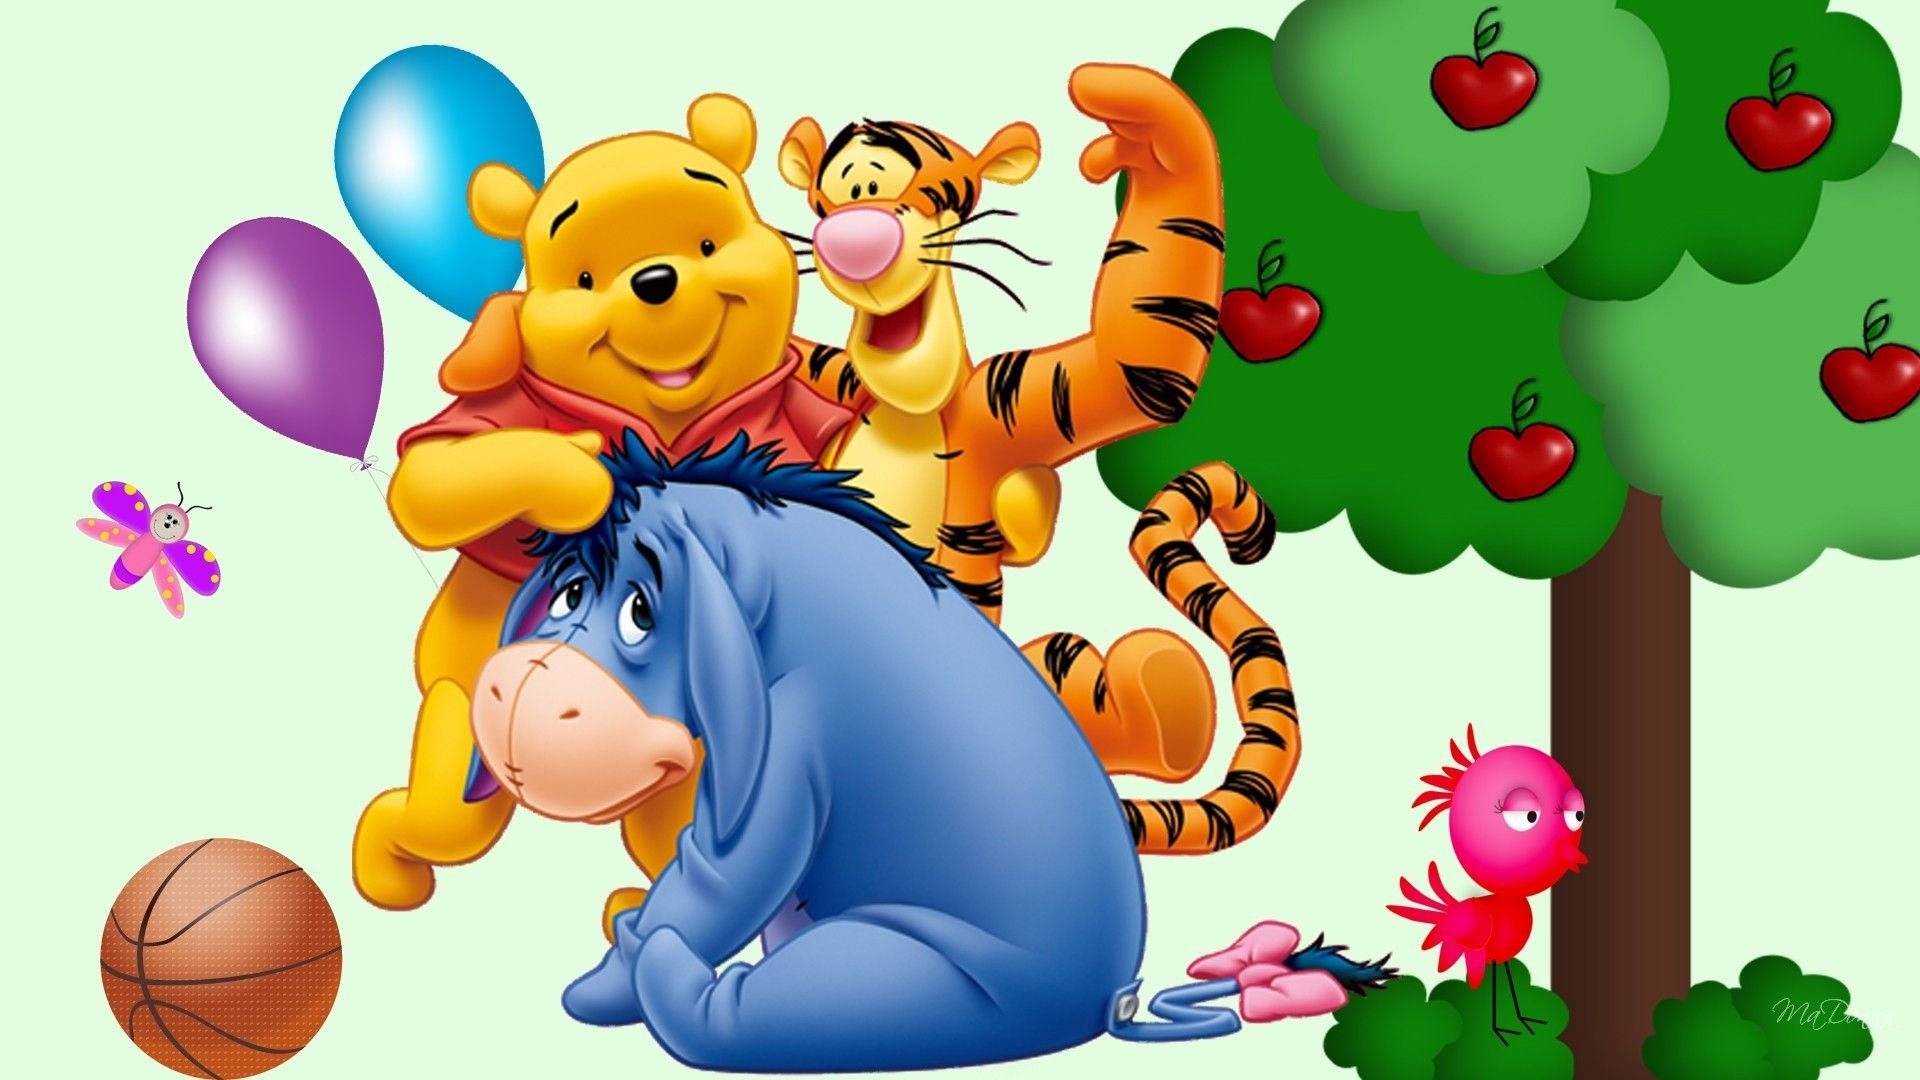 Tigger wallpapers 66 background pictures 1920x1200 winnie the pooh hd wallpapers backgrounds wallpaper altavistaventures Images